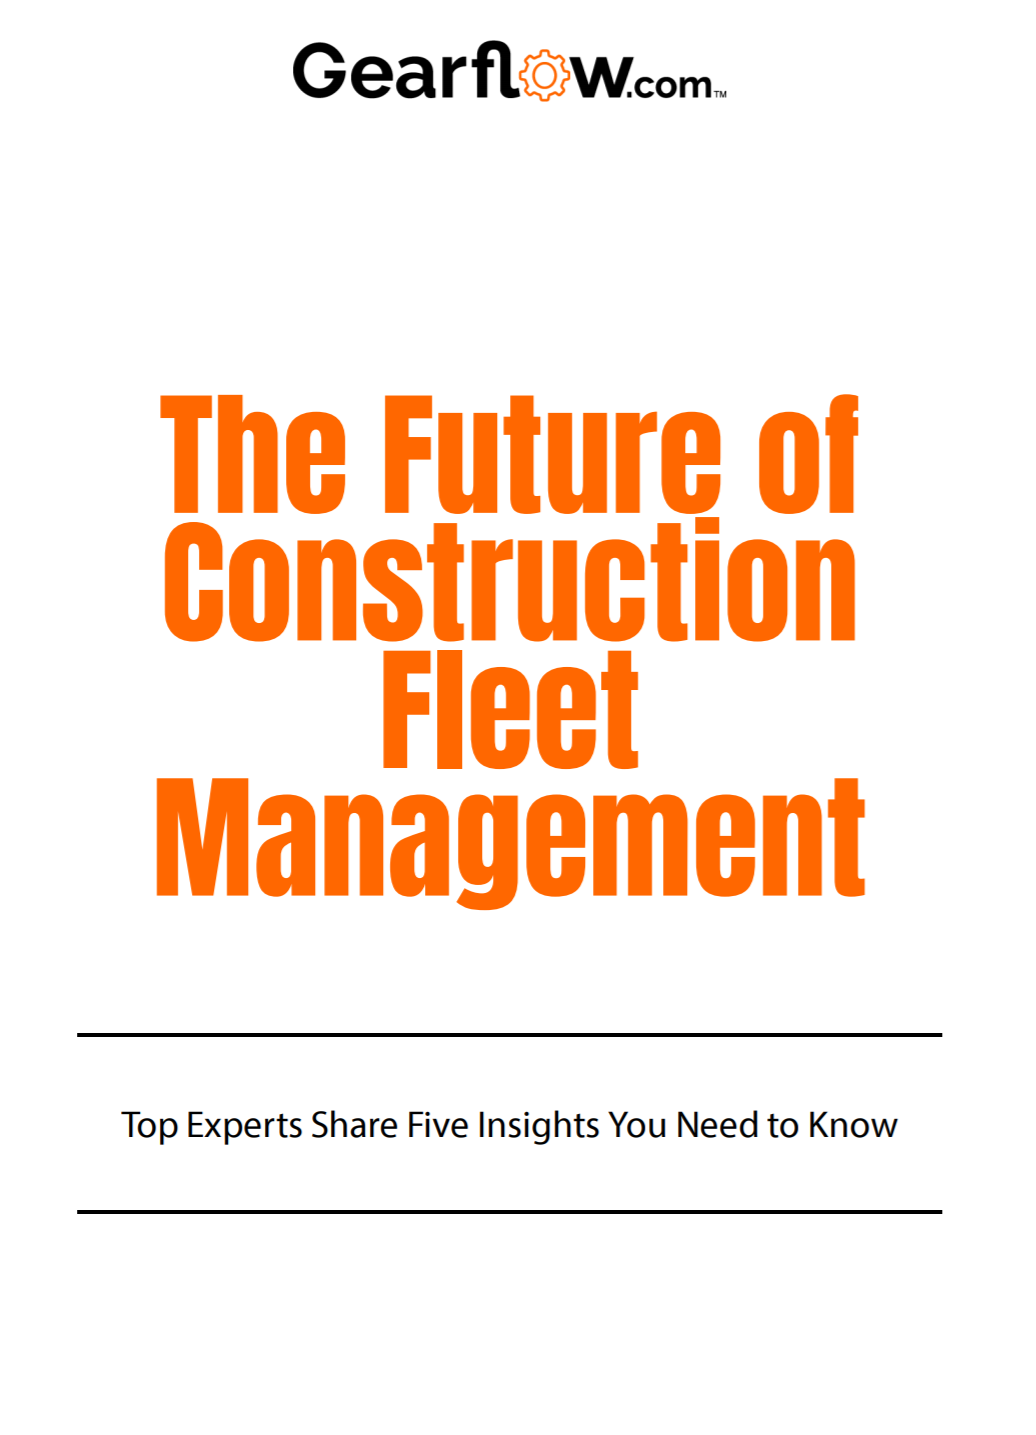 Learn expert's insights for the future of fleet management with this free download.